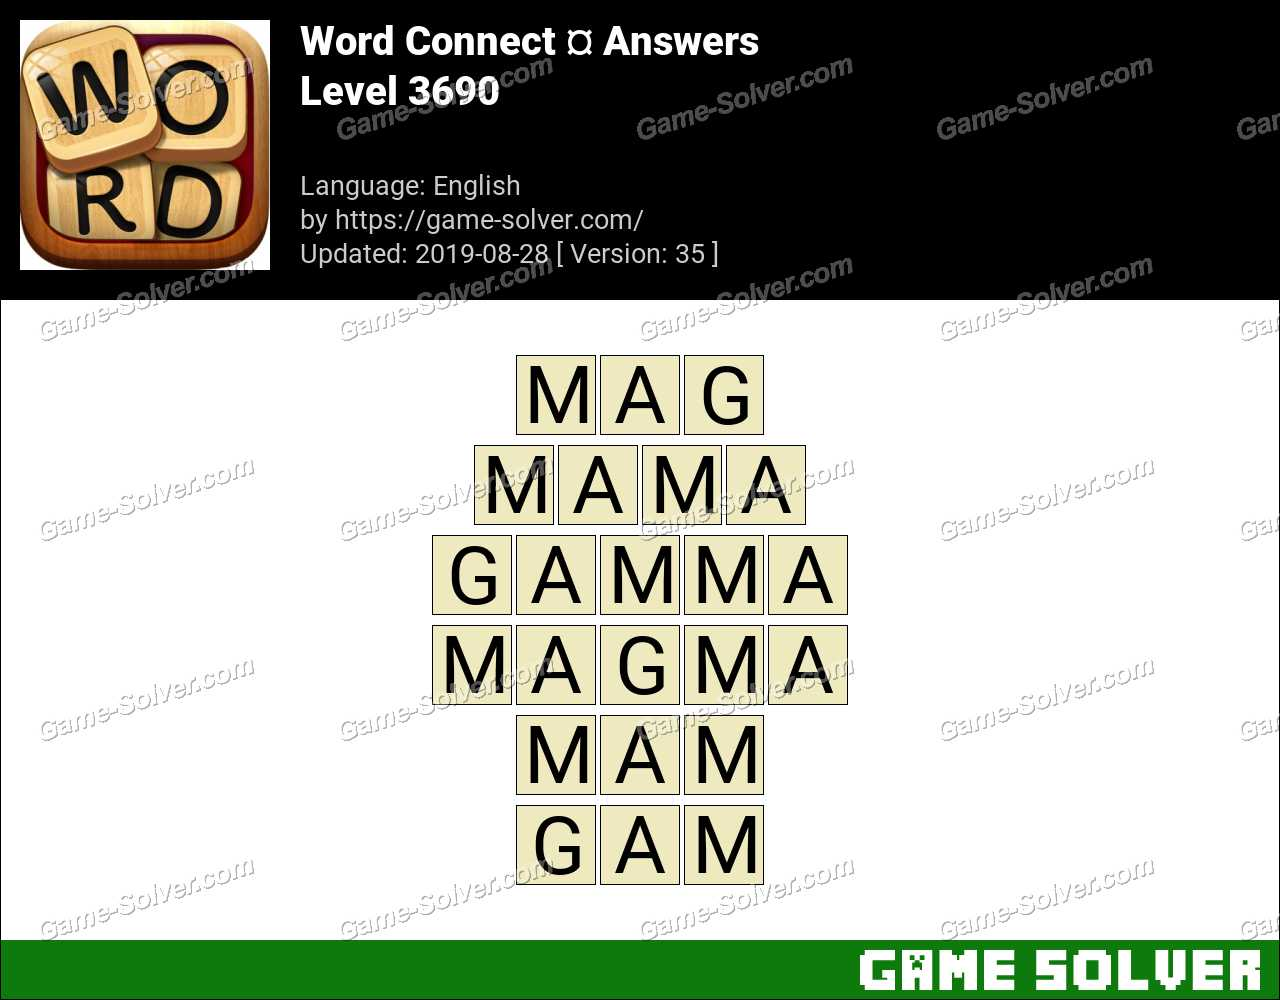 Word Connect Level 3690 Answers